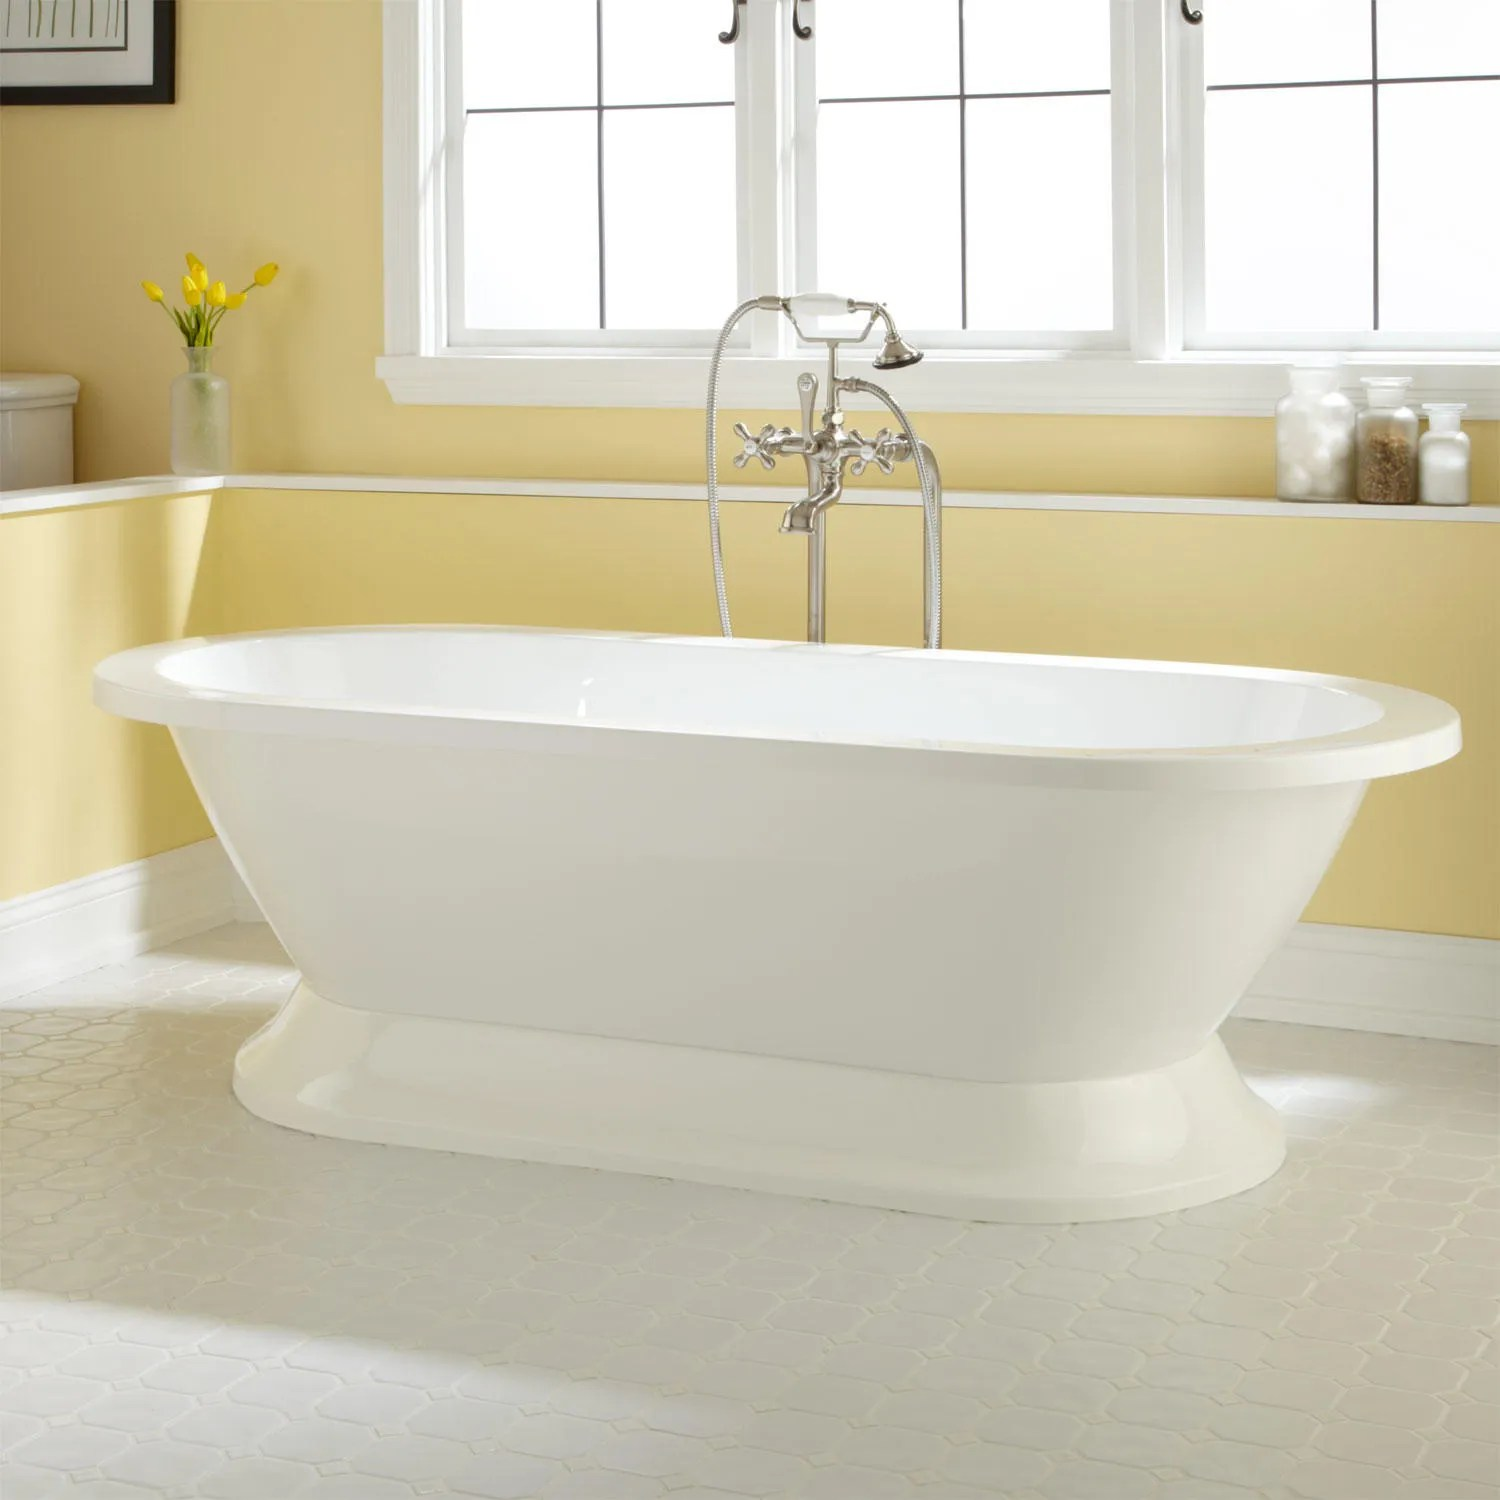 Liam Acrylic Pedestal Tub  Bathtubs  Bathroom